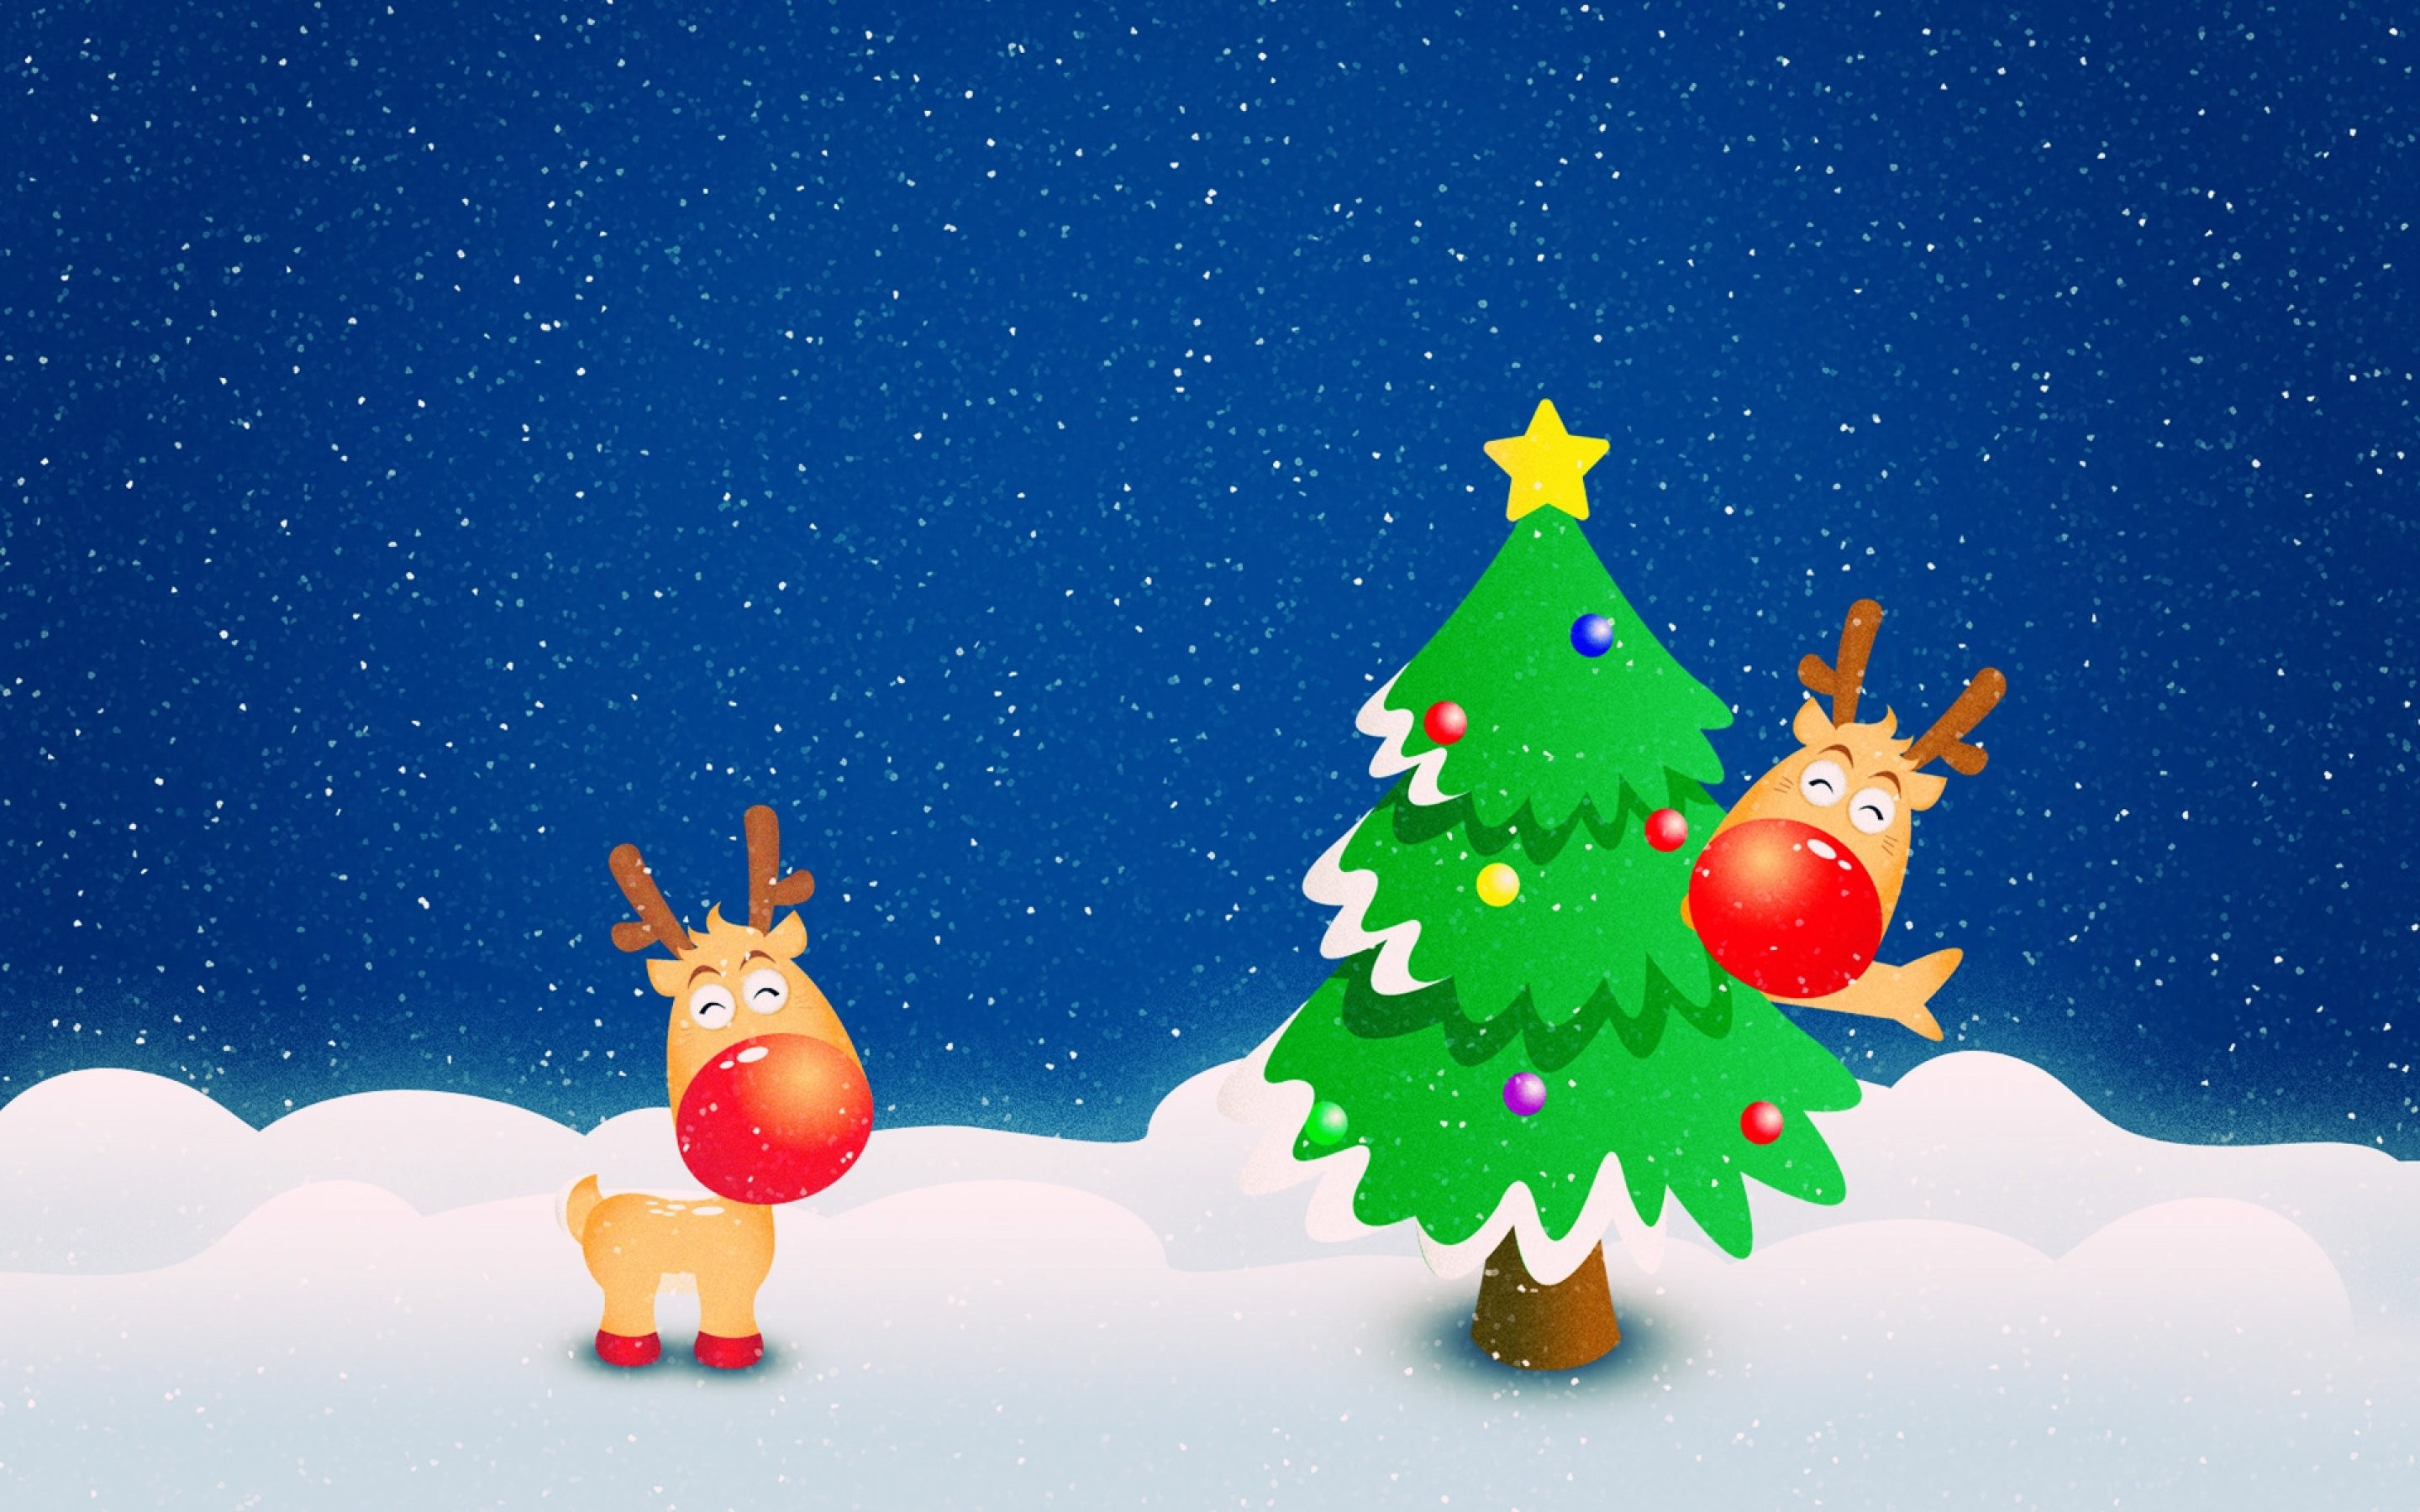 wallpaper-christmas-trees-white-winter-backgrounds-snow-cartoon-pines-cute